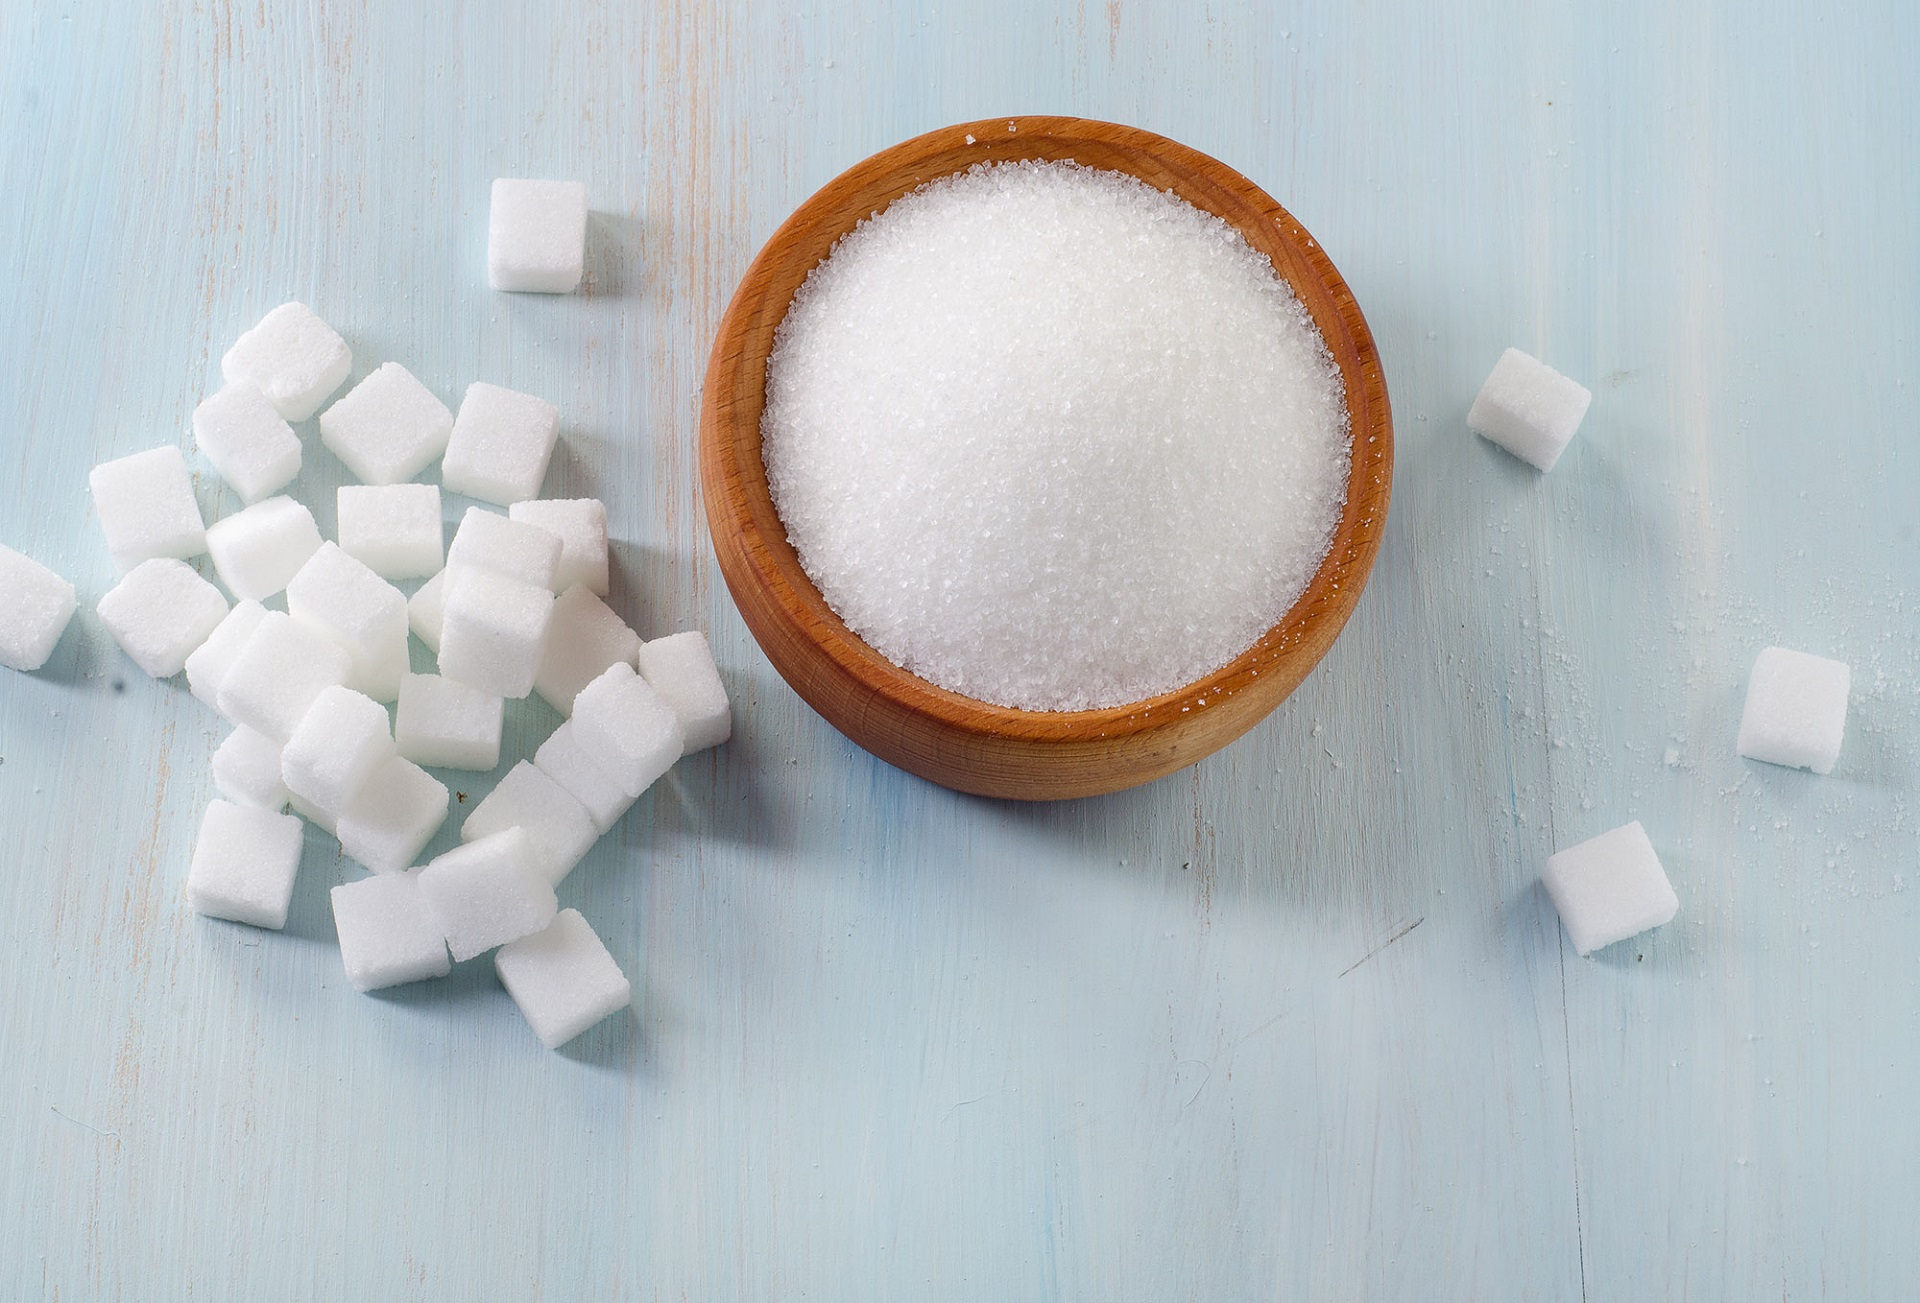 Sugar on wooden table. Selective focus